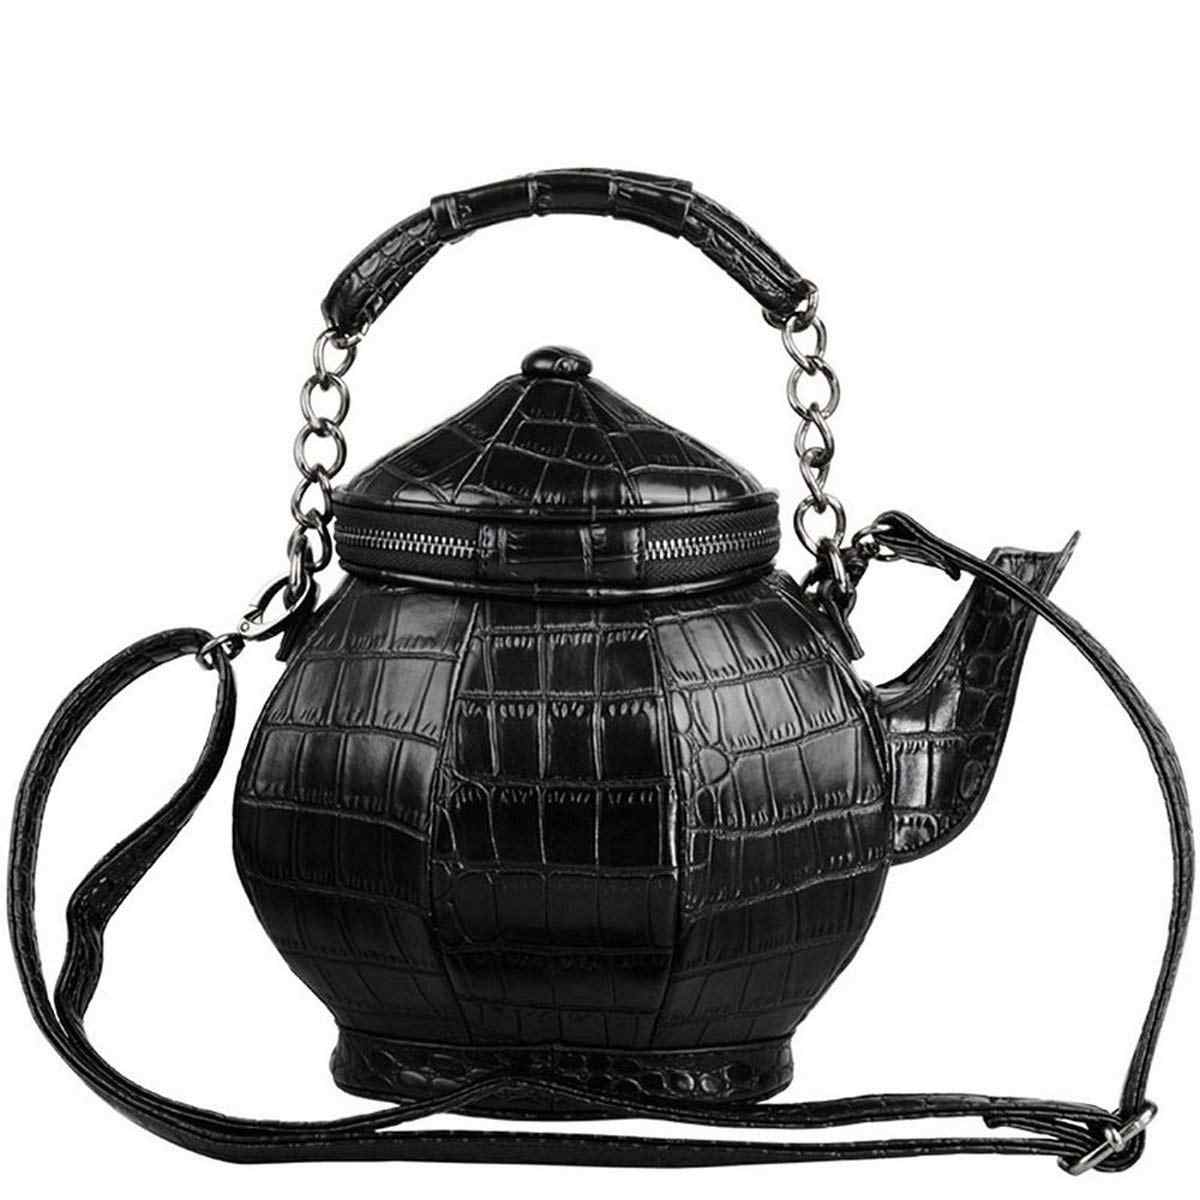 BEAU-Funny Gothic Purse Teapot Shaped Crossbody Handbag Top-Handle Tote Women'S Shoulder Bags